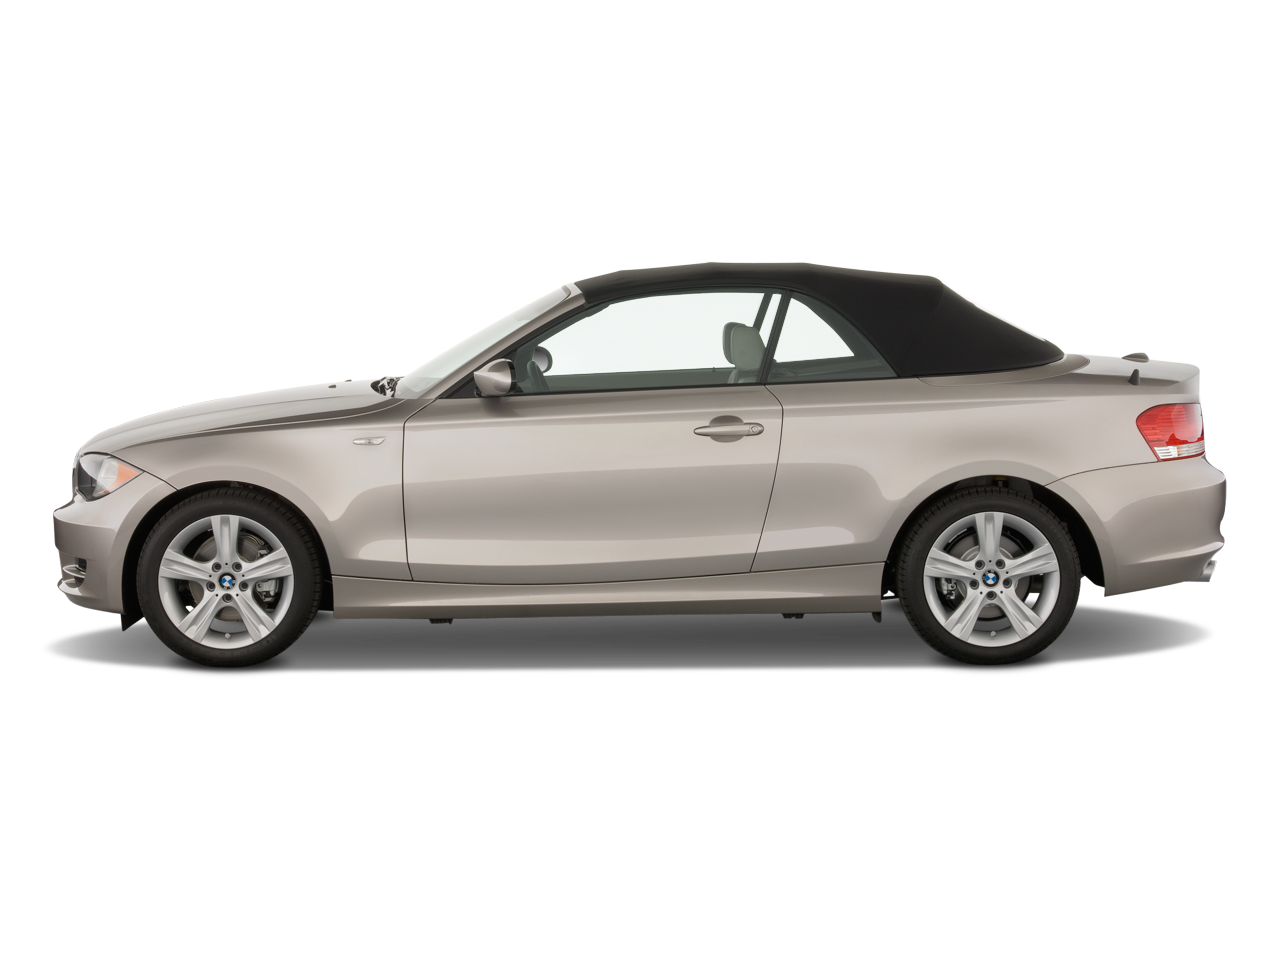 2008 BMW 128i Convertible - BMW 1 Series Luxury Convertible Review ...